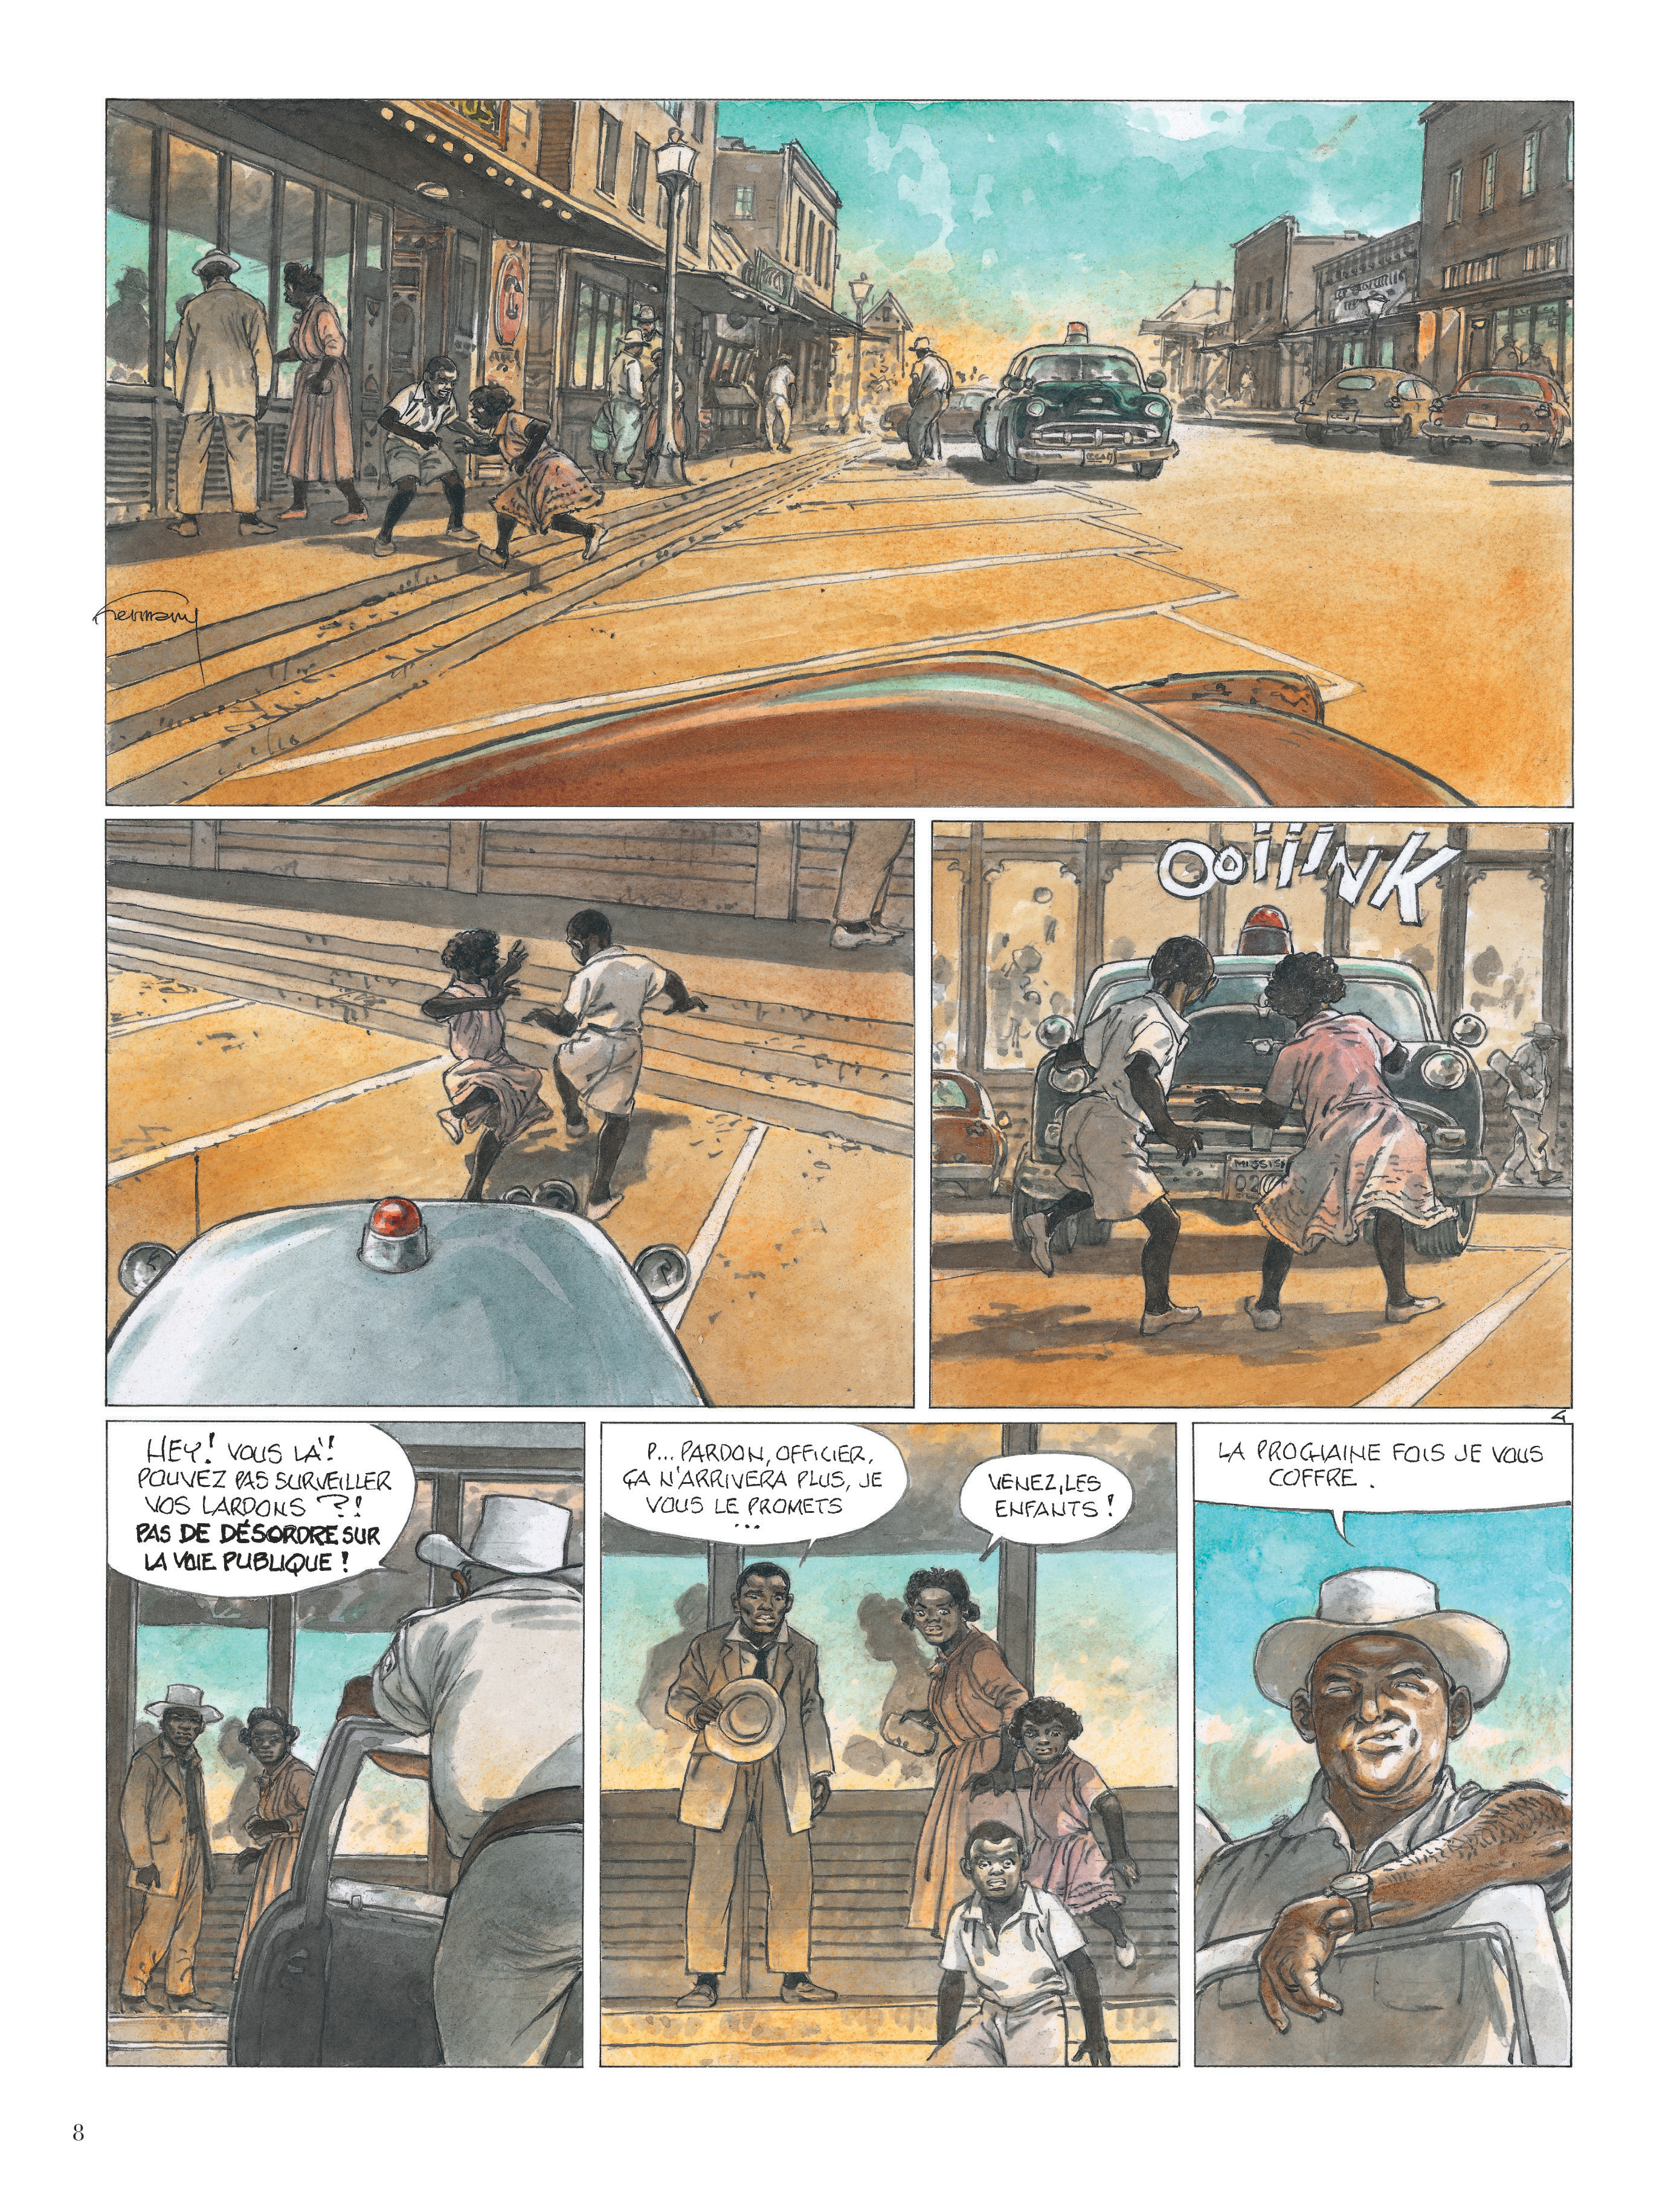 Old_Pa_Anderson_Page 8